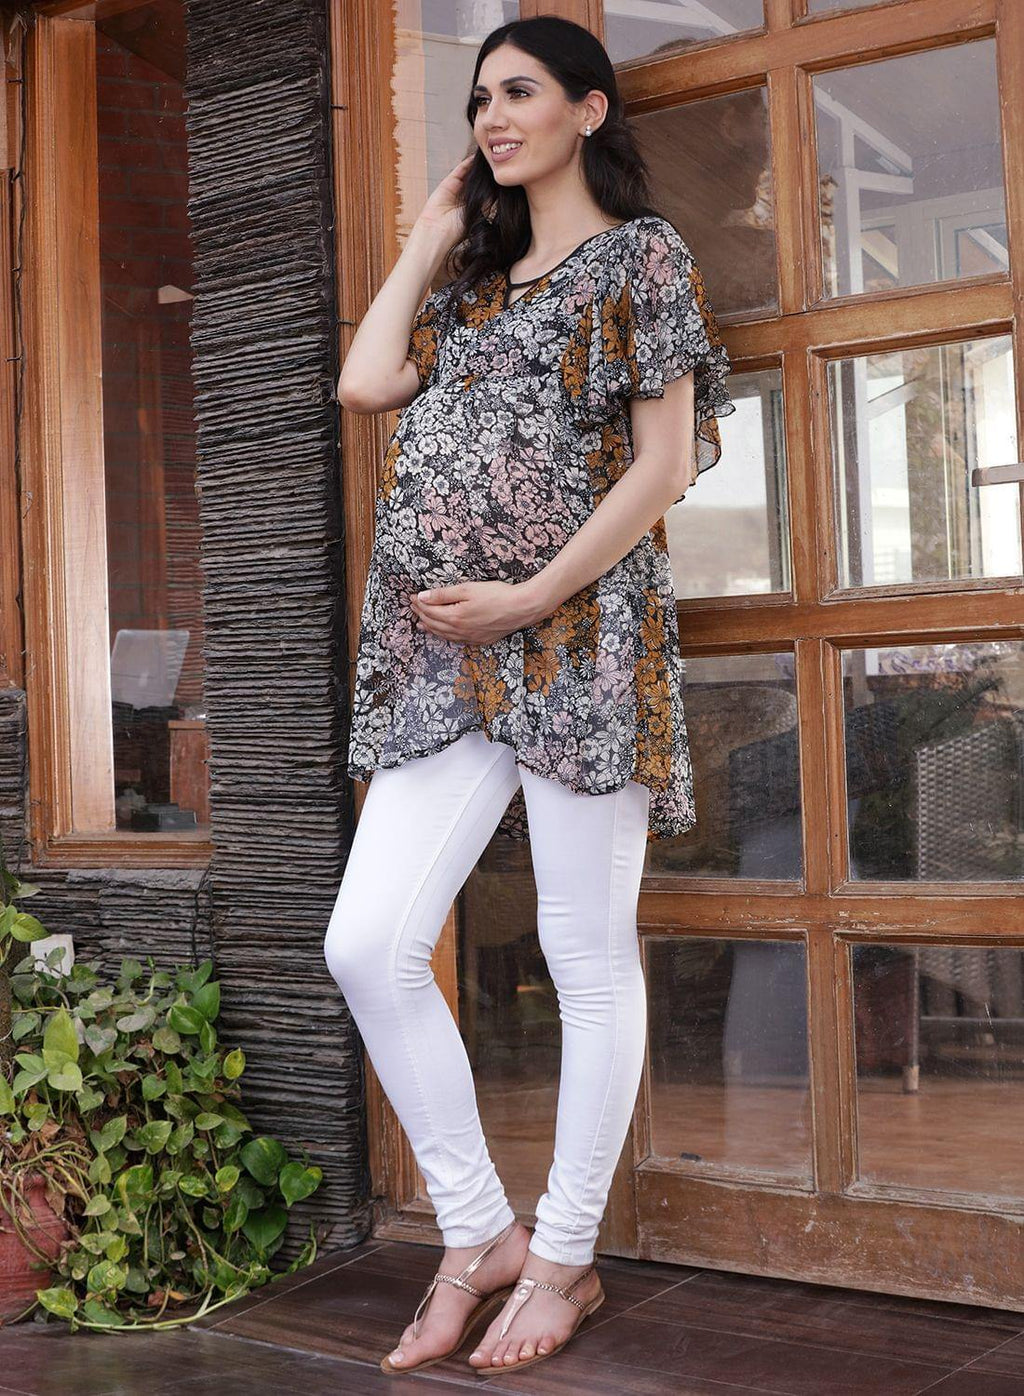 Black Regular Fit Maternity Top w/ Floral Pattern Made of Georgette- Mine4Nine